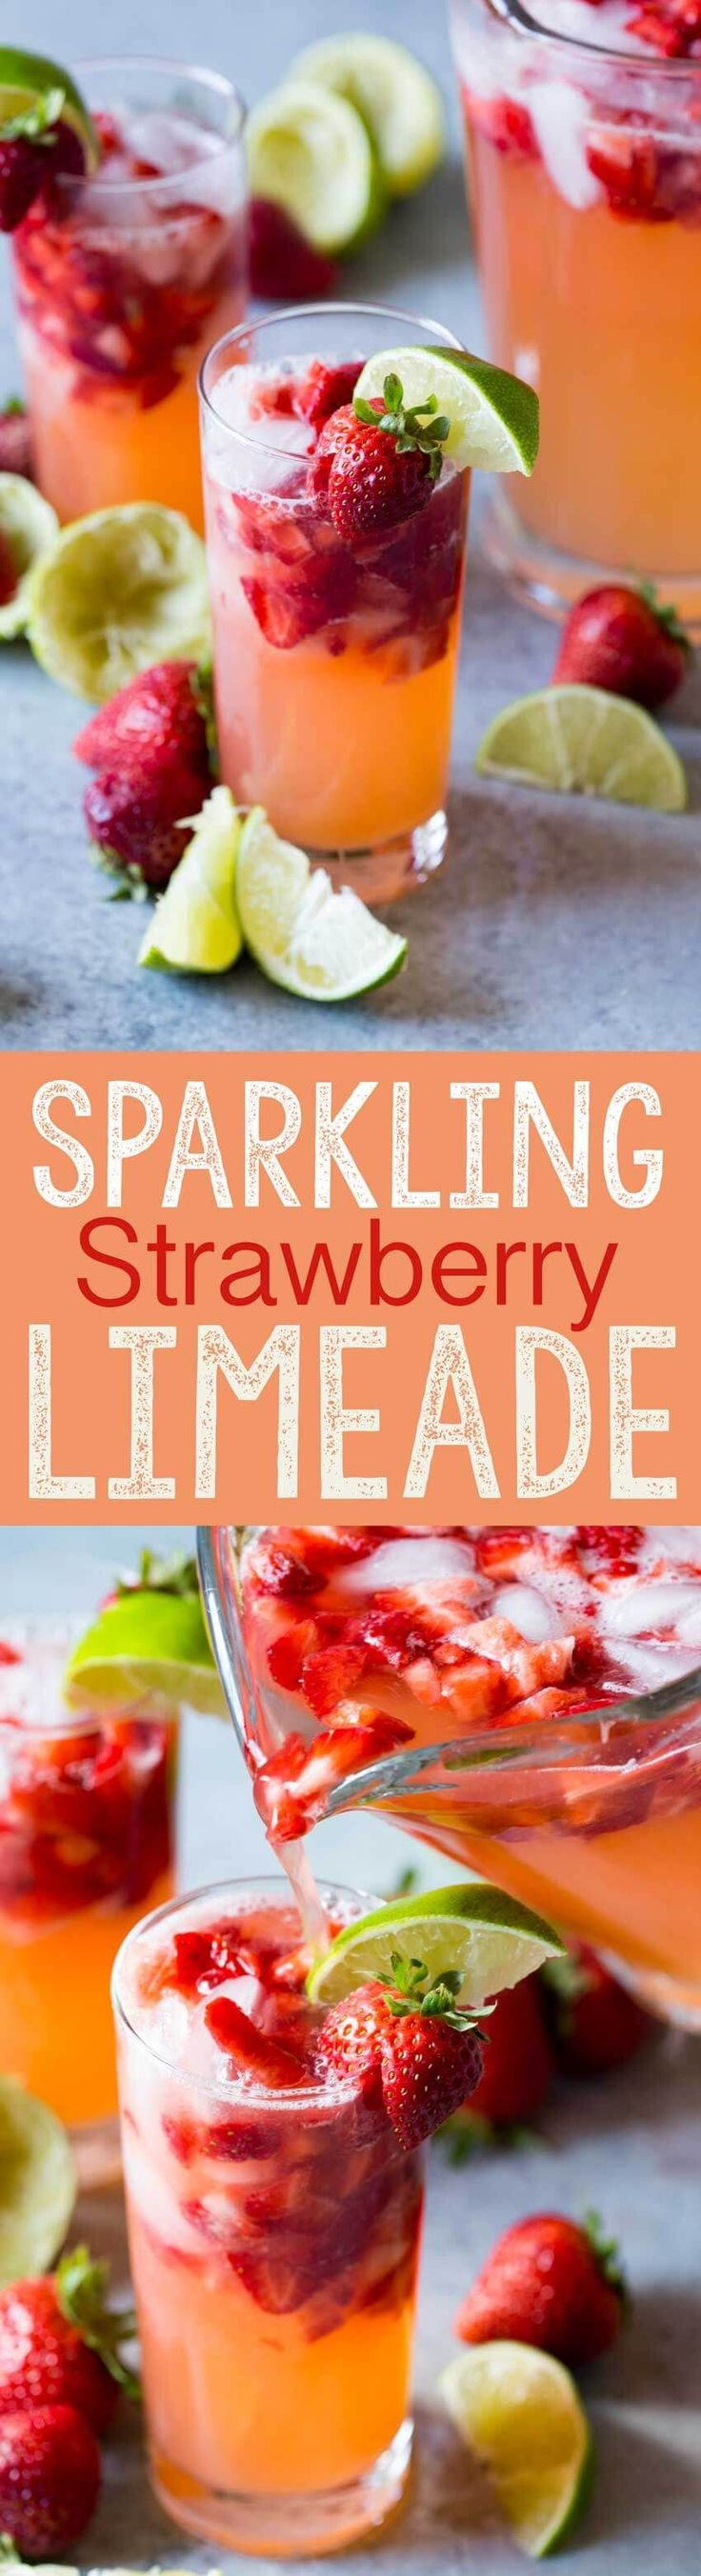 Beverage Recipes: Sparkling Strawberry Limeade